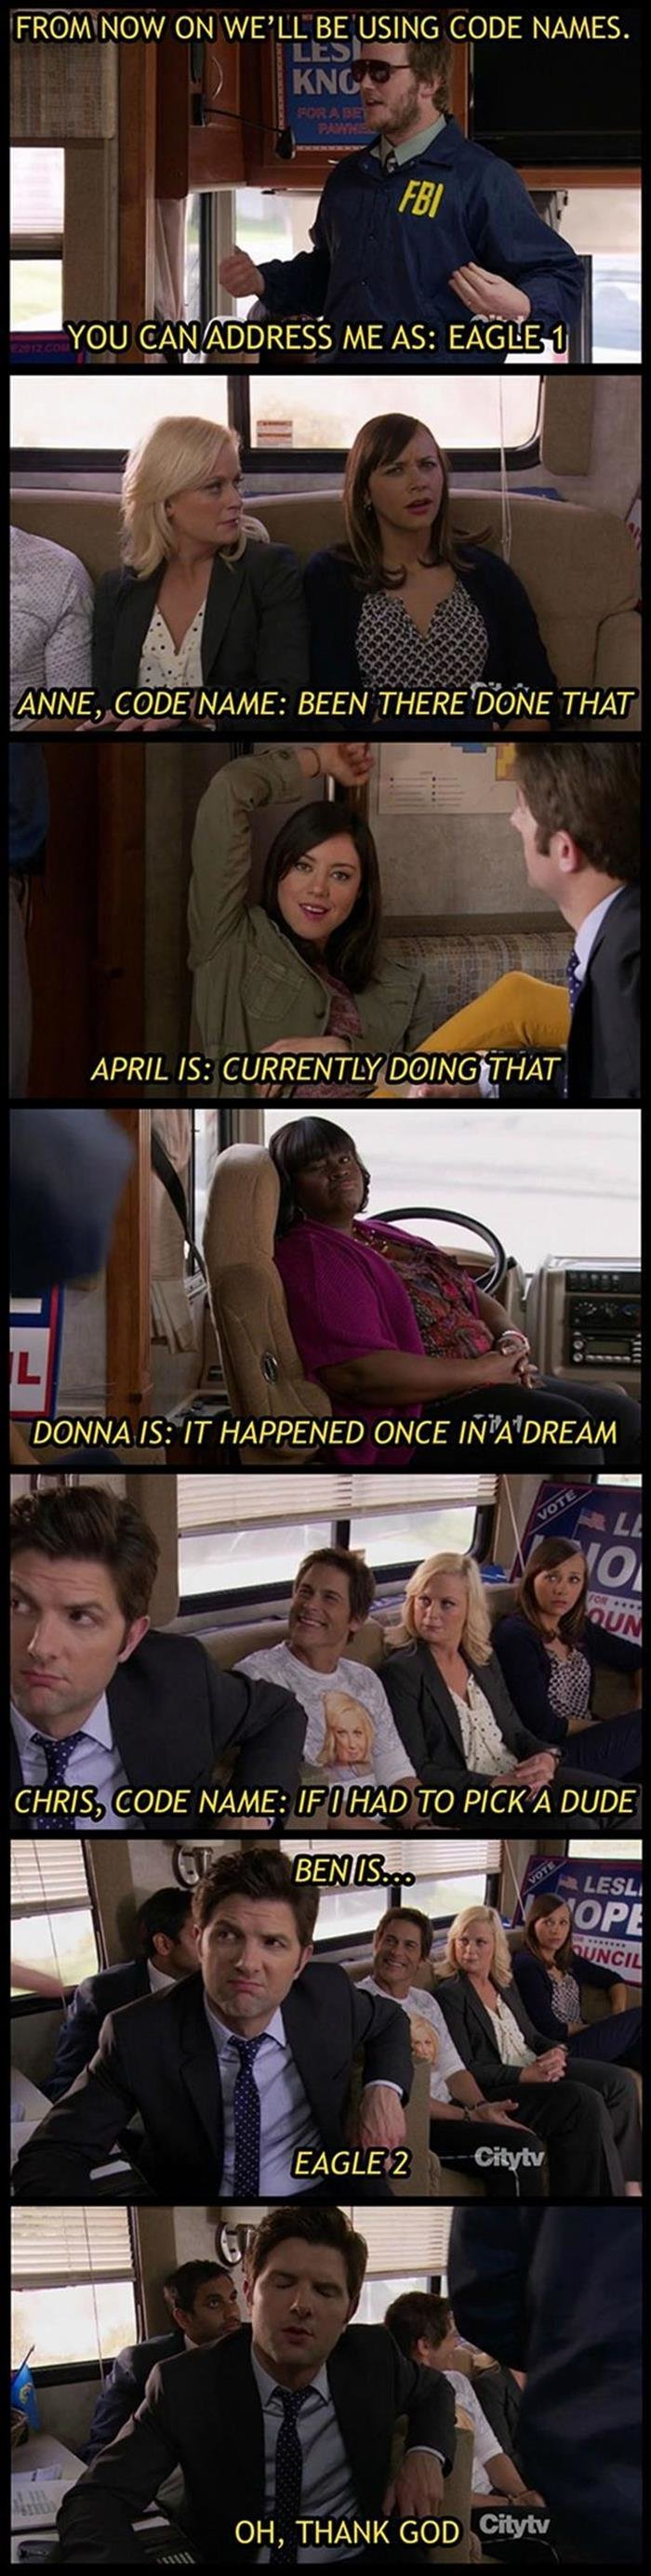 Eagle. Source: dumpaday. FROM NOW ON WE' LL BE USING CODE NAMES. ANNE, CODE NAME: BEEN THERE THAT APRIL IS: CURRENTLY ! Ngi_ THAT_ DONNA IS: IT HAPPENED ONCE ii